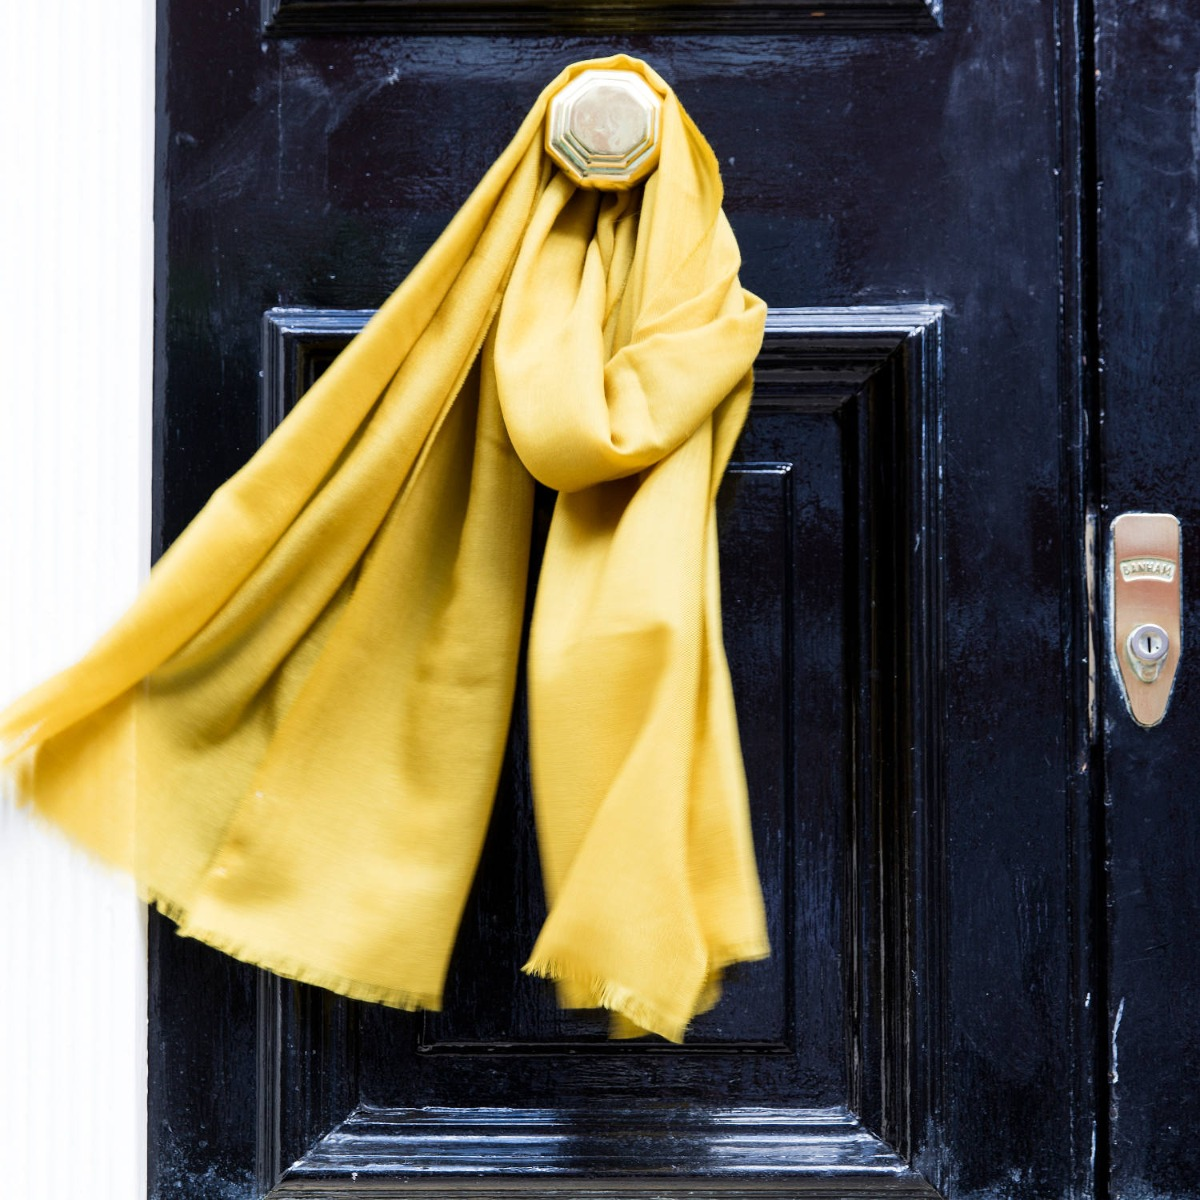 The 'Iona' dark yellow superfine cashmere scarf wrapped around an exterior gold door handle.